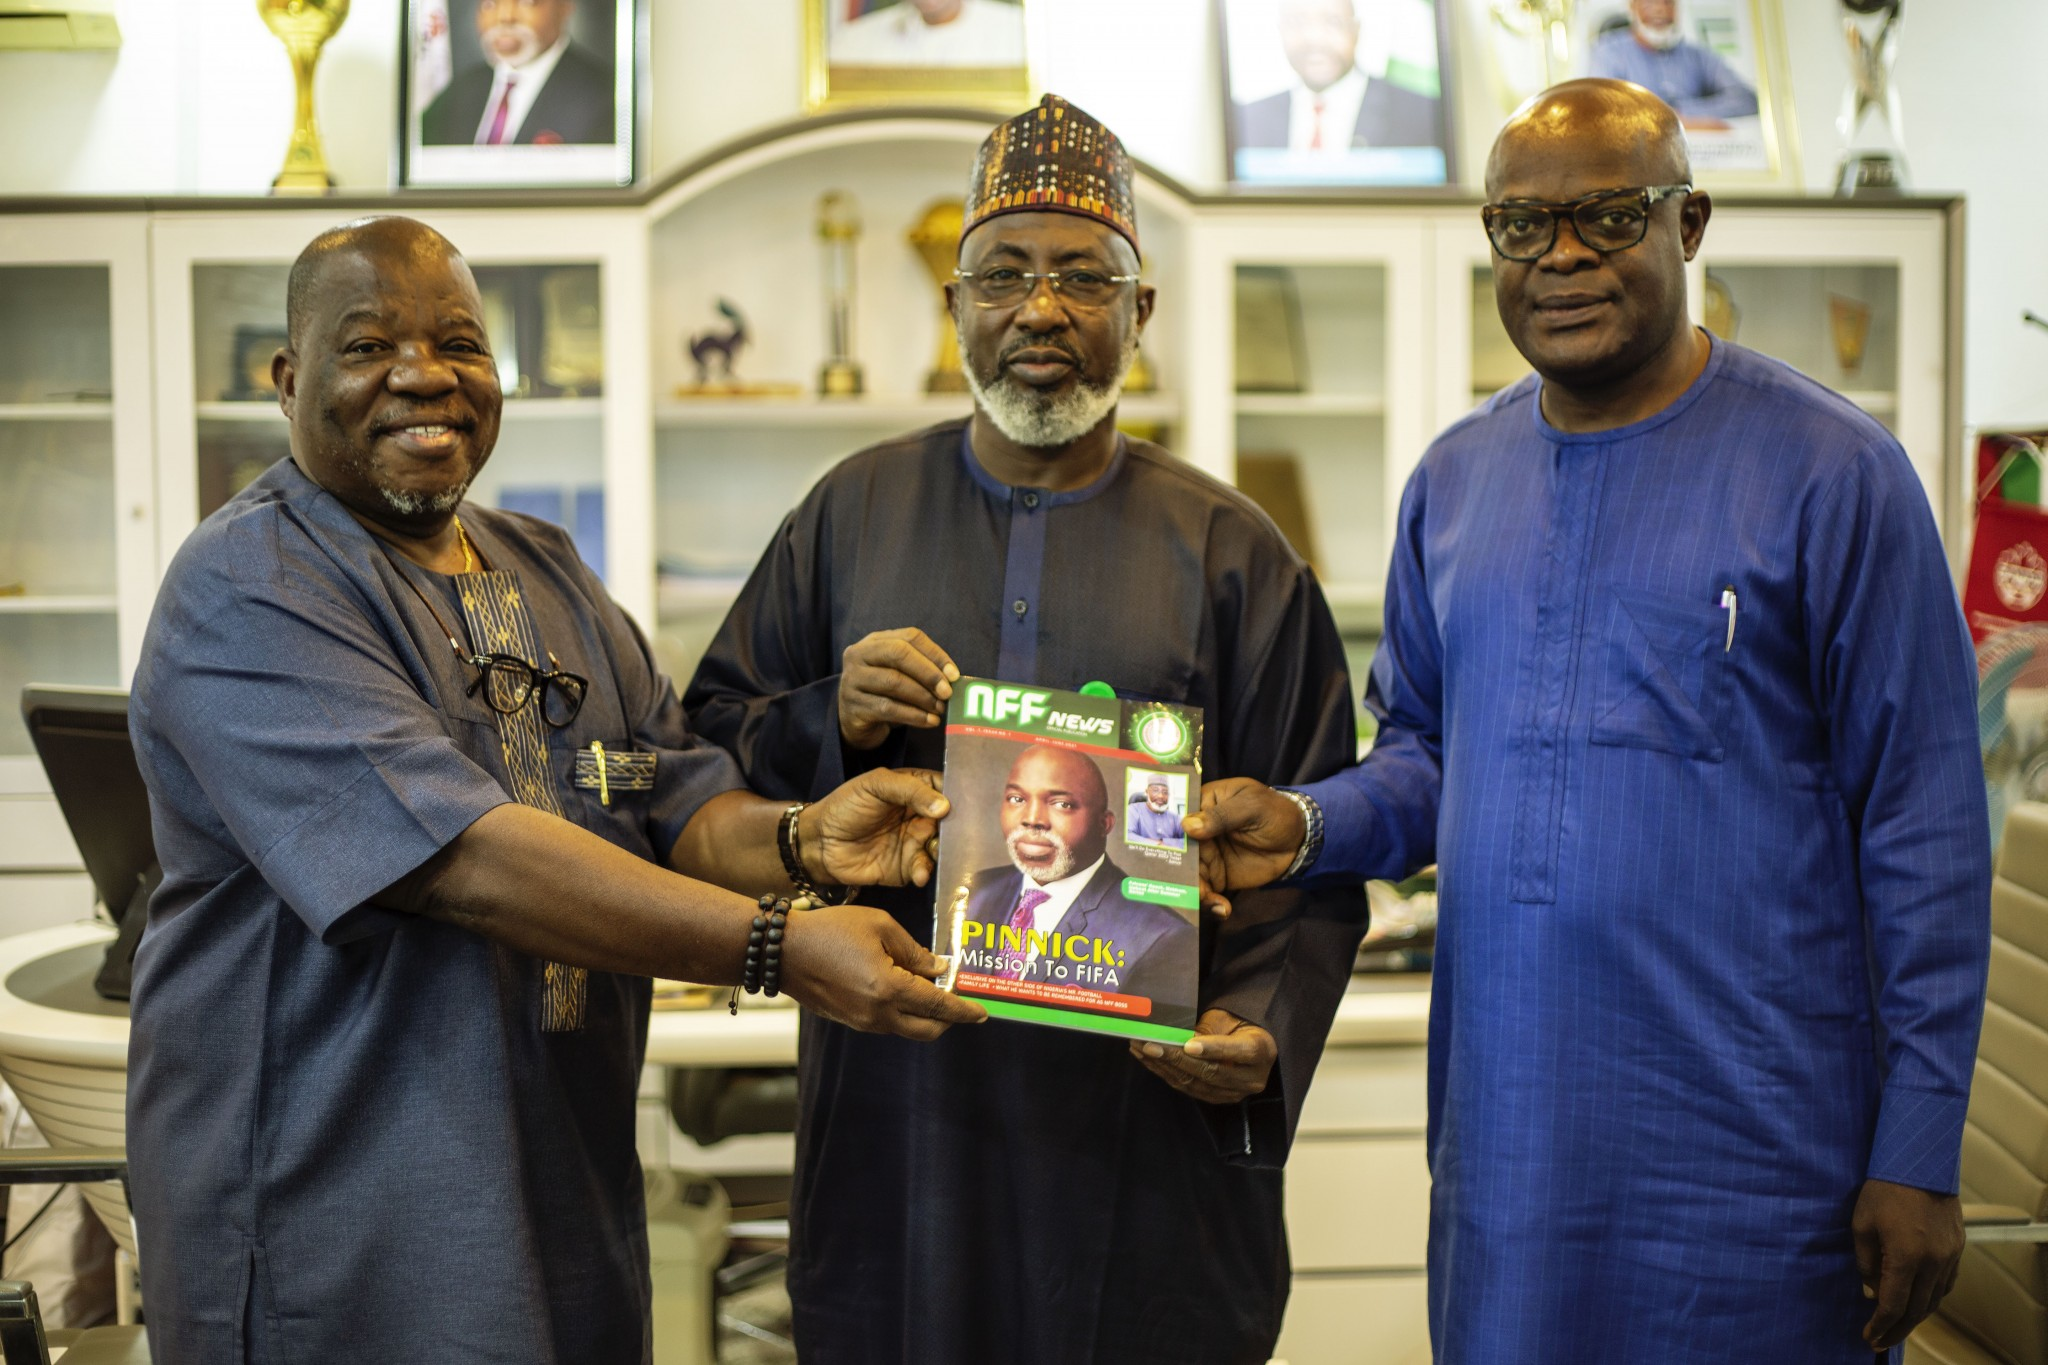 NFF rolls out quarterly magazine, NFF News